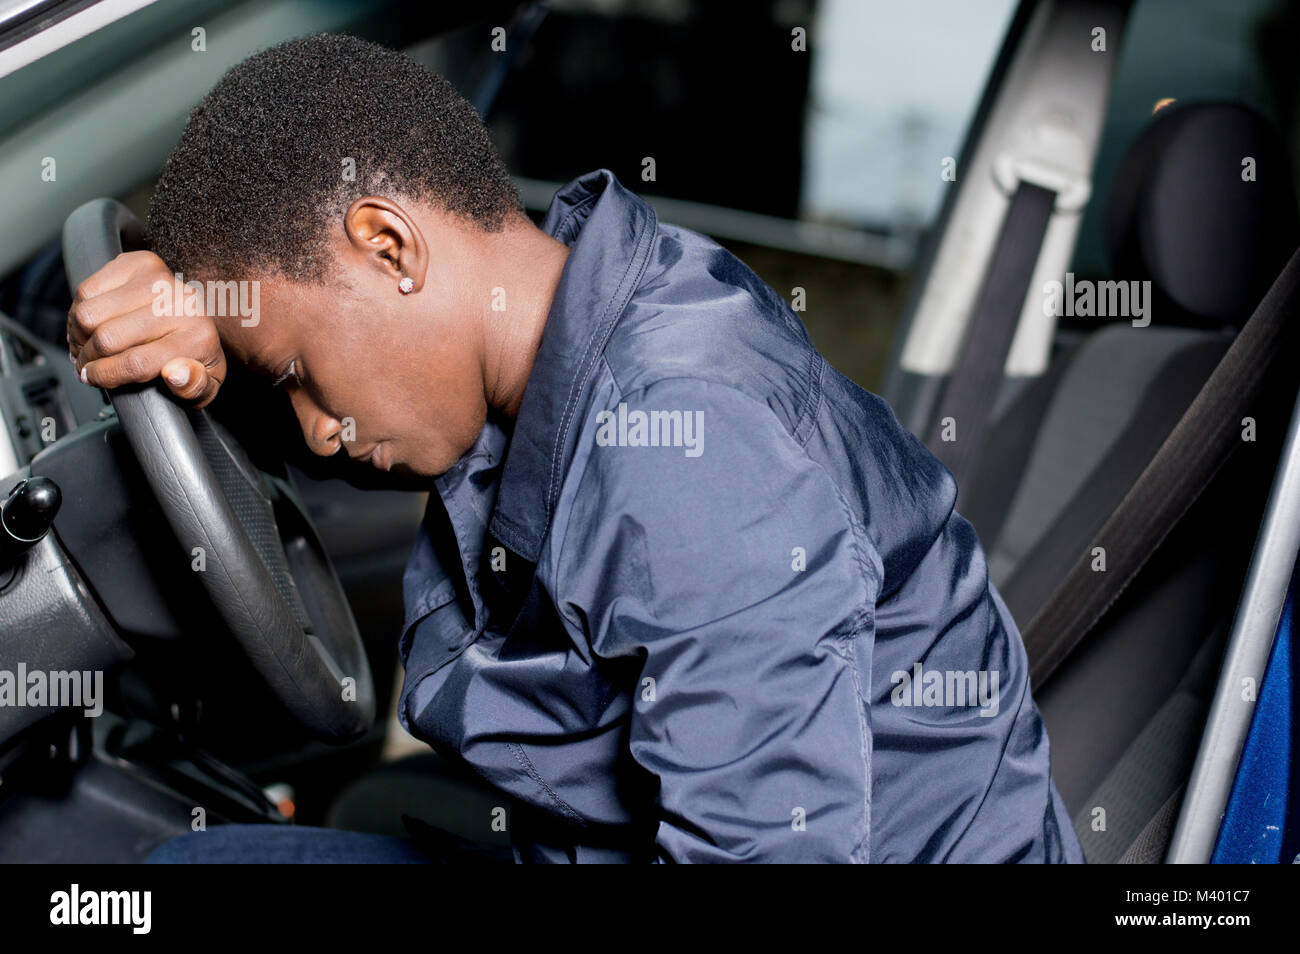 Young woman mechanic sitting at the wheel of a car, head on the wheel and pensive. - Stock Image